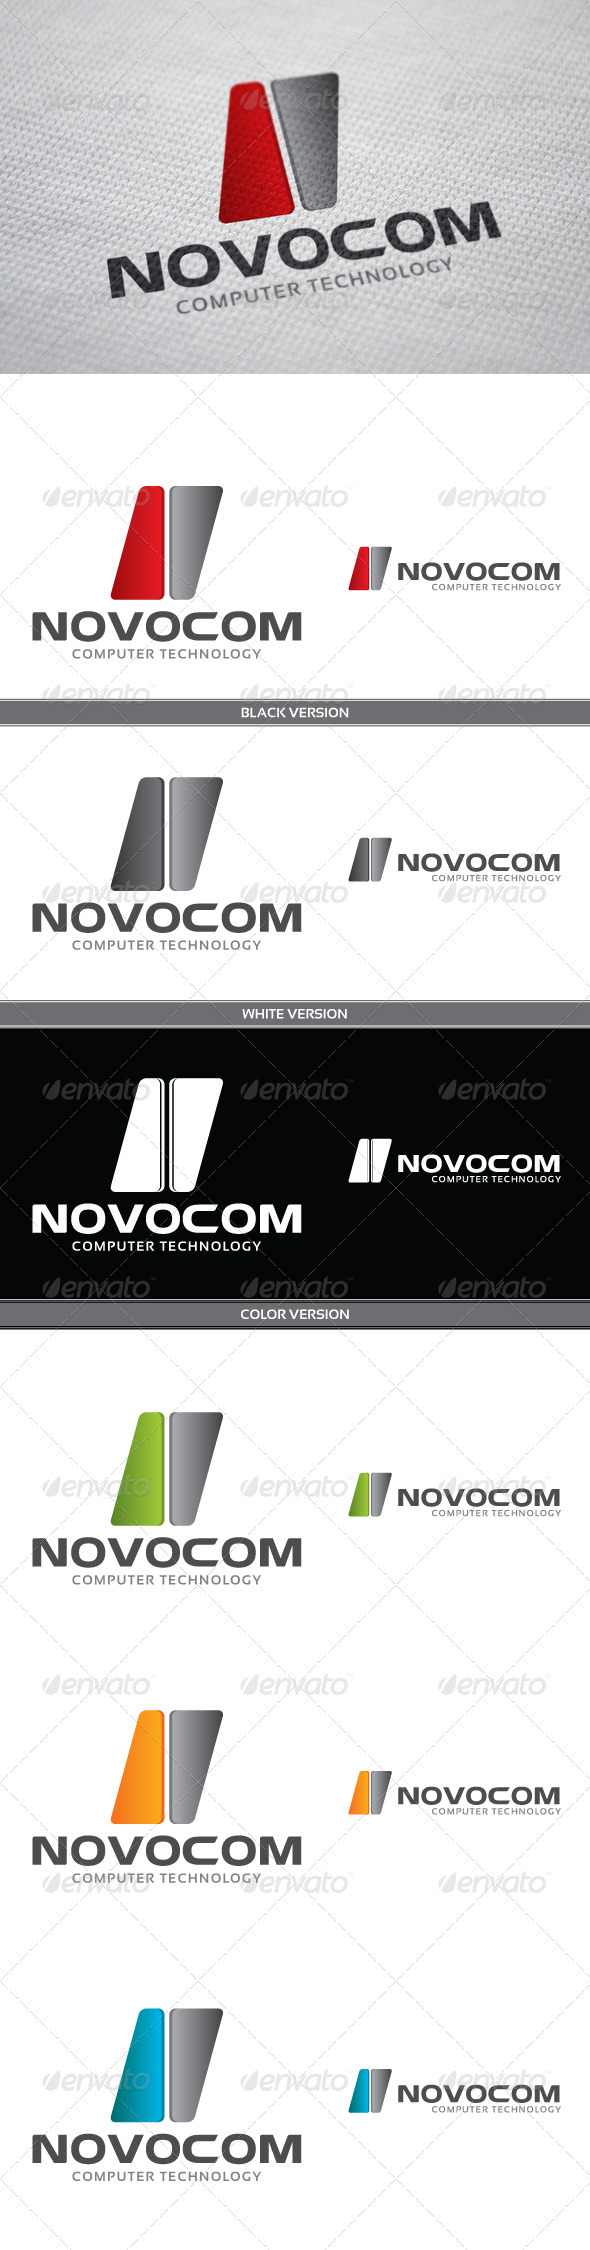 Novocom Logo - Vector Abstract